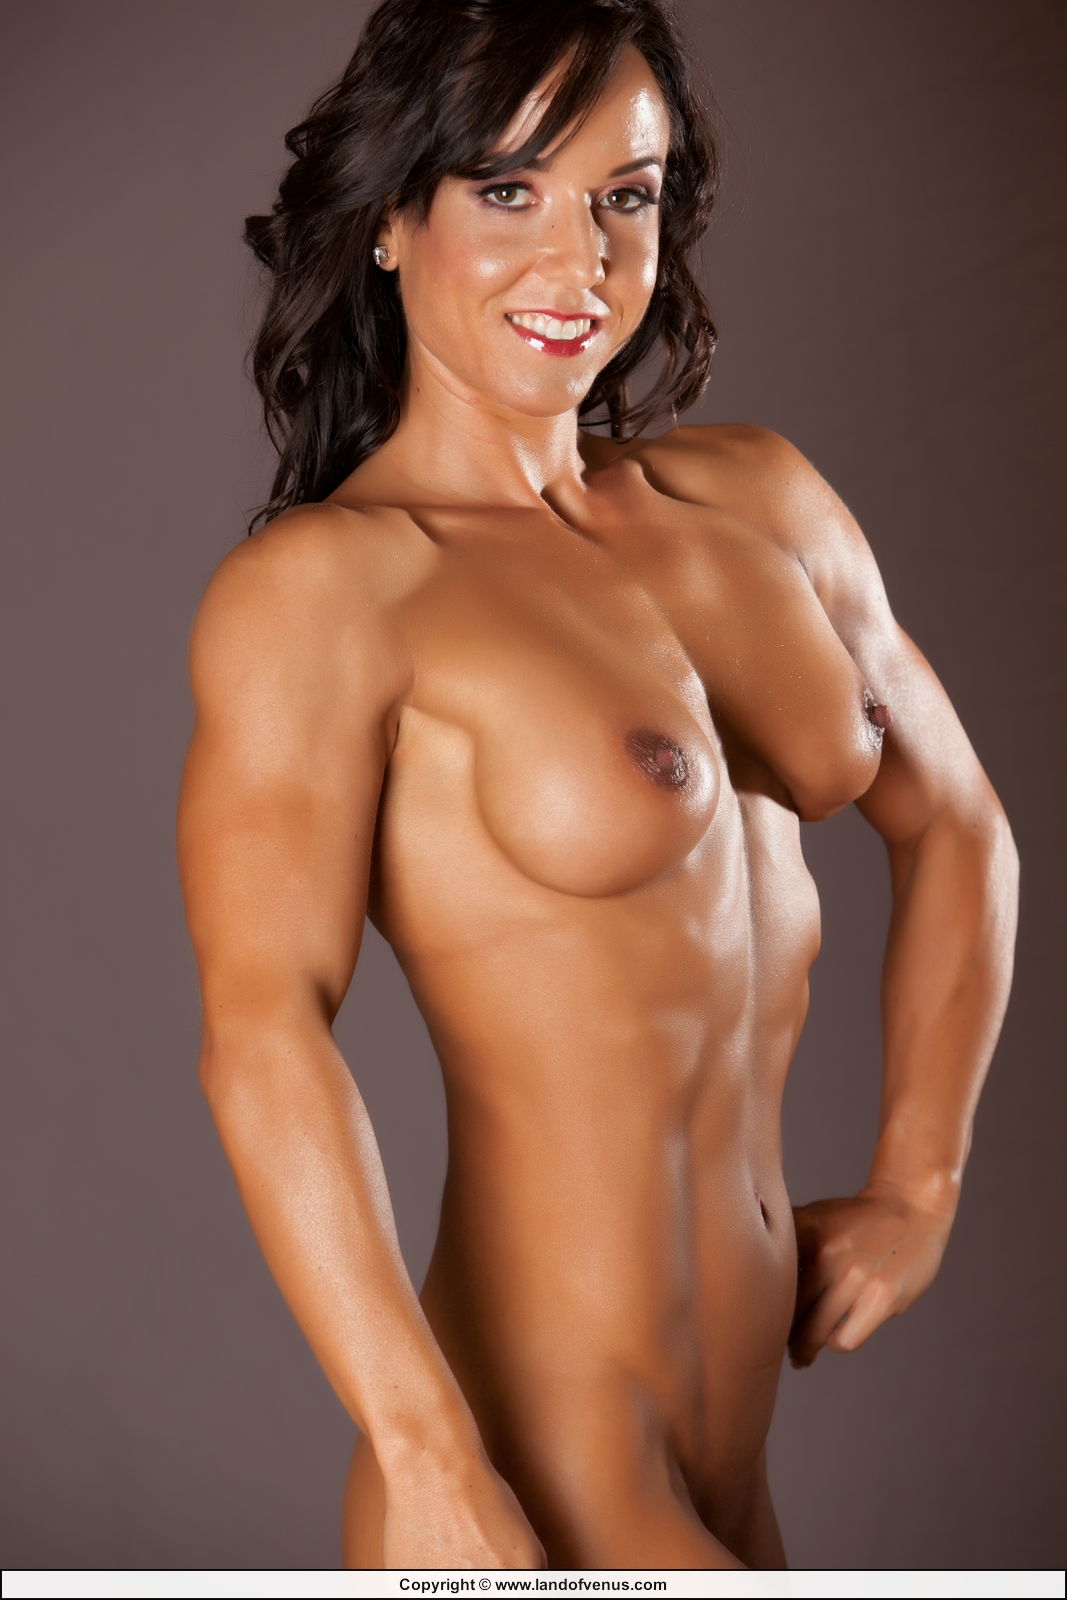 Naked fitness models female